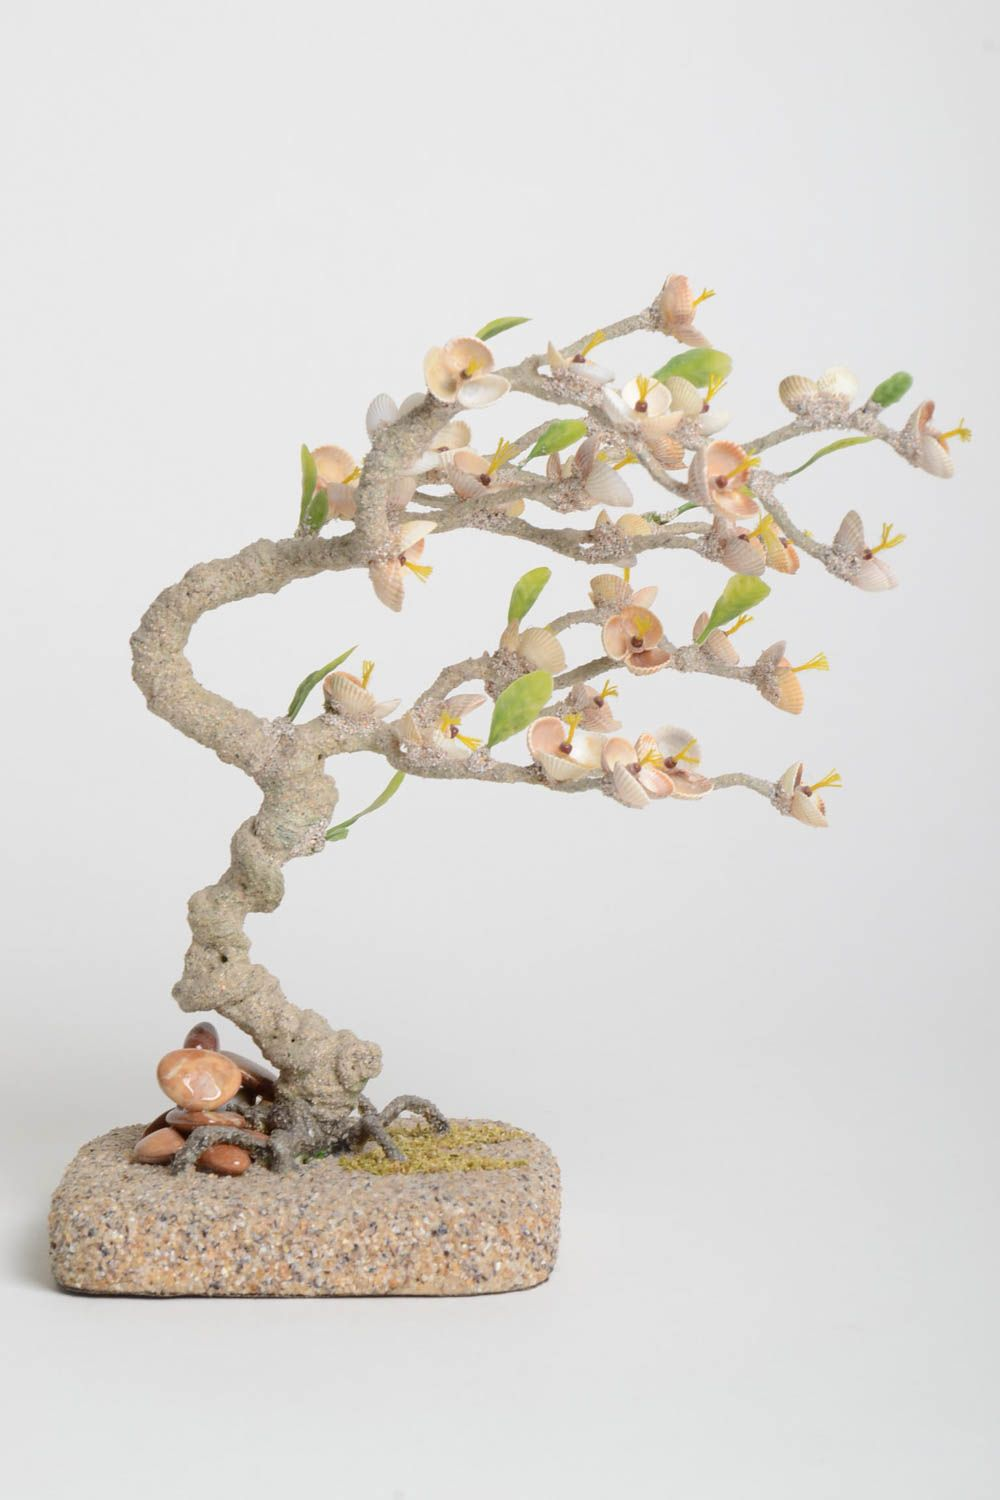 Handmade tree with flowers table decor gift ideas artificial tree home decor photo 2